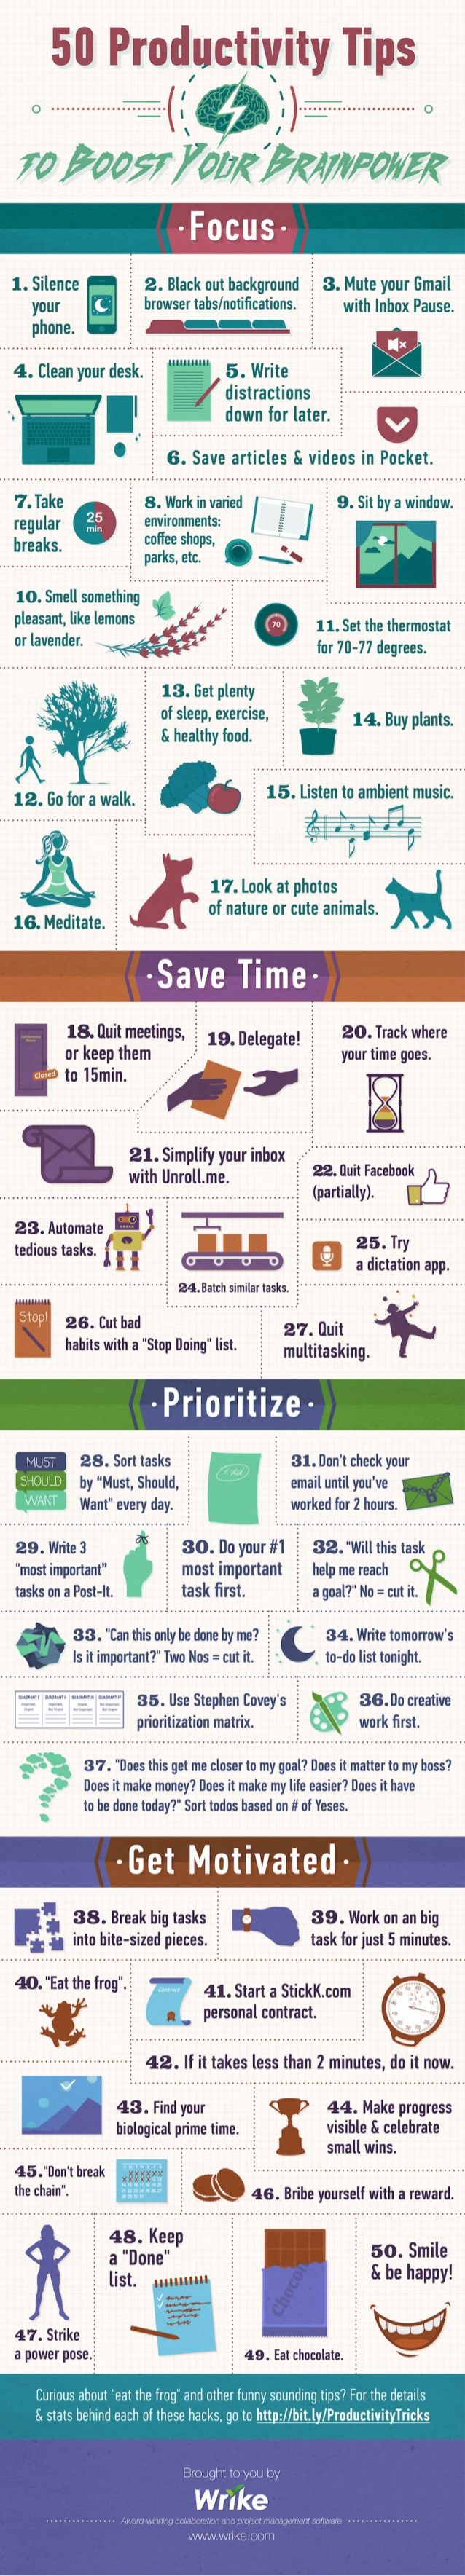 50 Productivity Hacks to Boost Your Brainpower (Infographic)